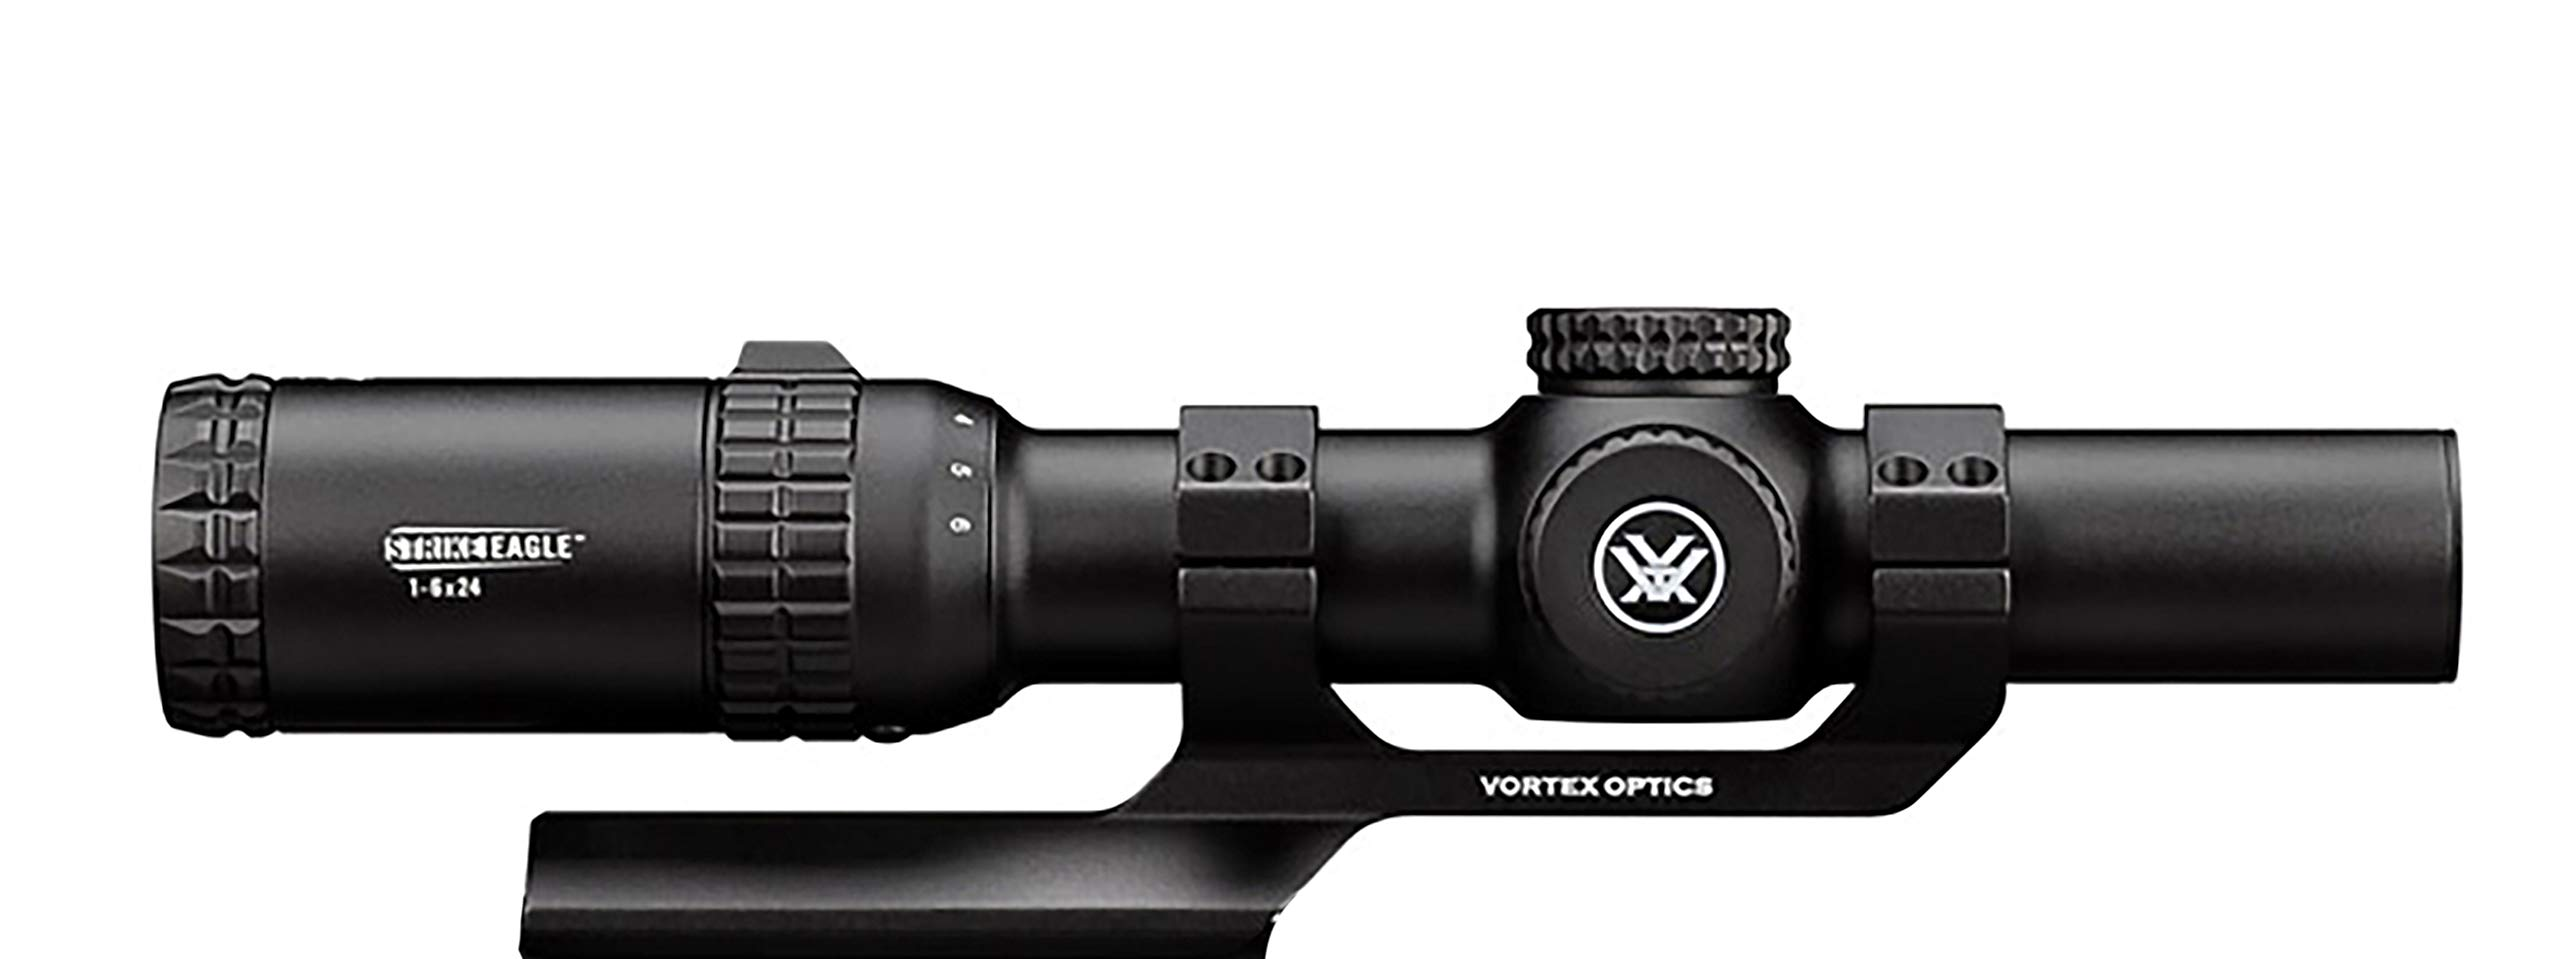 Vortex Optics Strike Eagle 1-6x24 Second Focal Plane Riflescope - BDC Reticle (MOA) with Sport Cantilever 30mm Mount - 2-Inch Offset by Vortex Optics